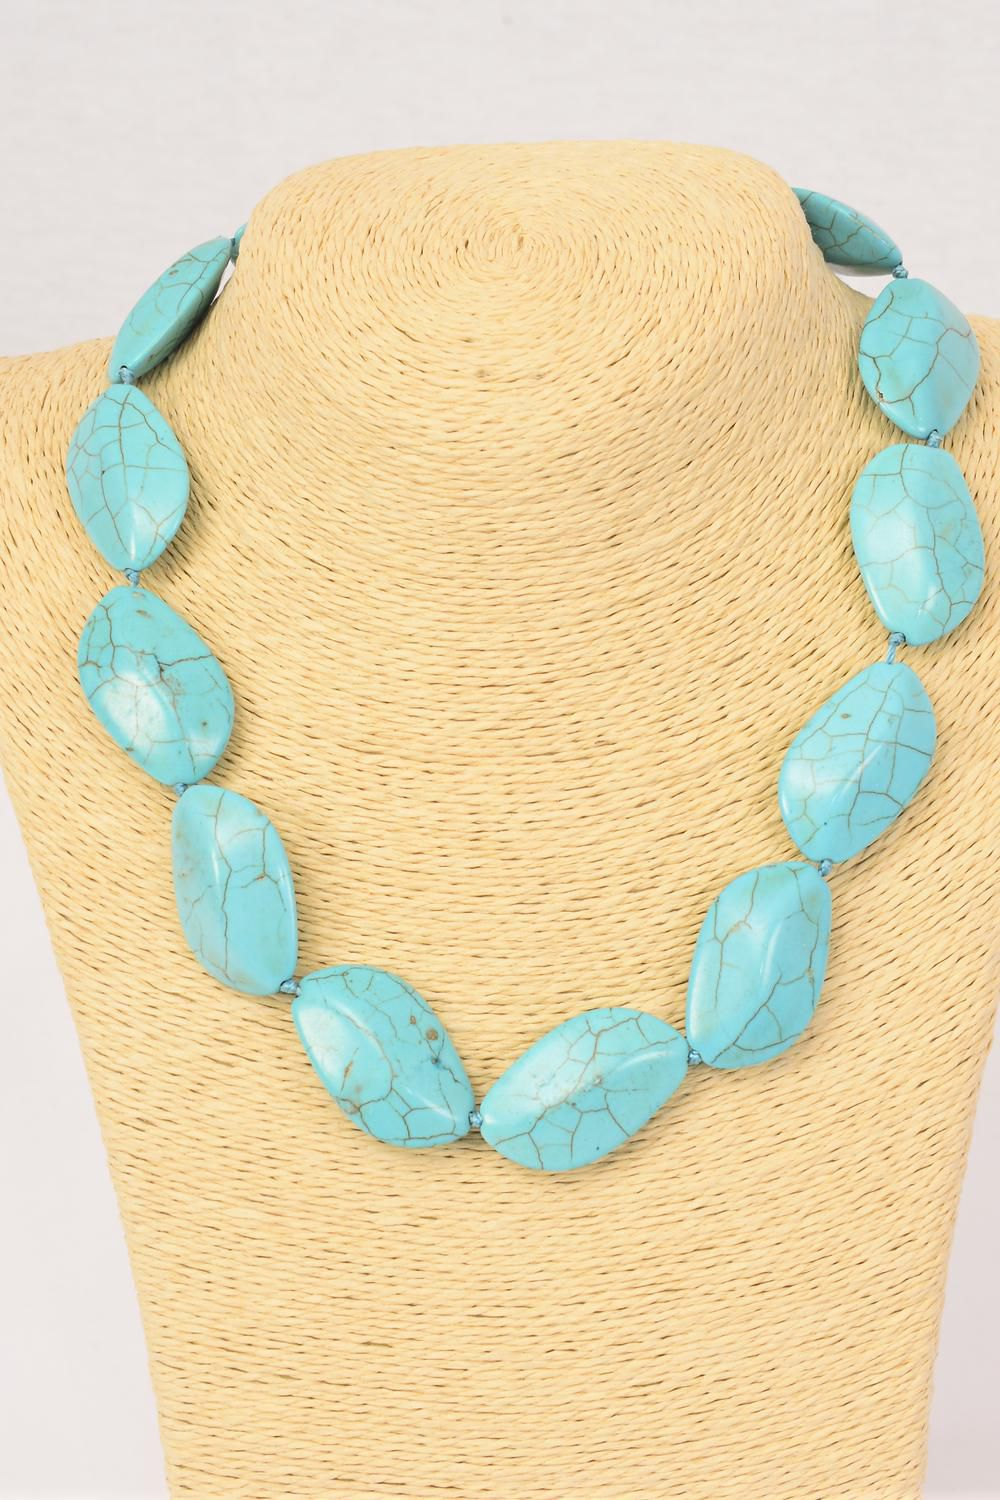 "Necklace Turquoise Hand Carved Oblique Real Semiprecious Stones/PC **Turquoise** Block Size-21 cm x 31 cm,Size-18"" extension Chain, Hang tag & Opp Bag & UPC Code"